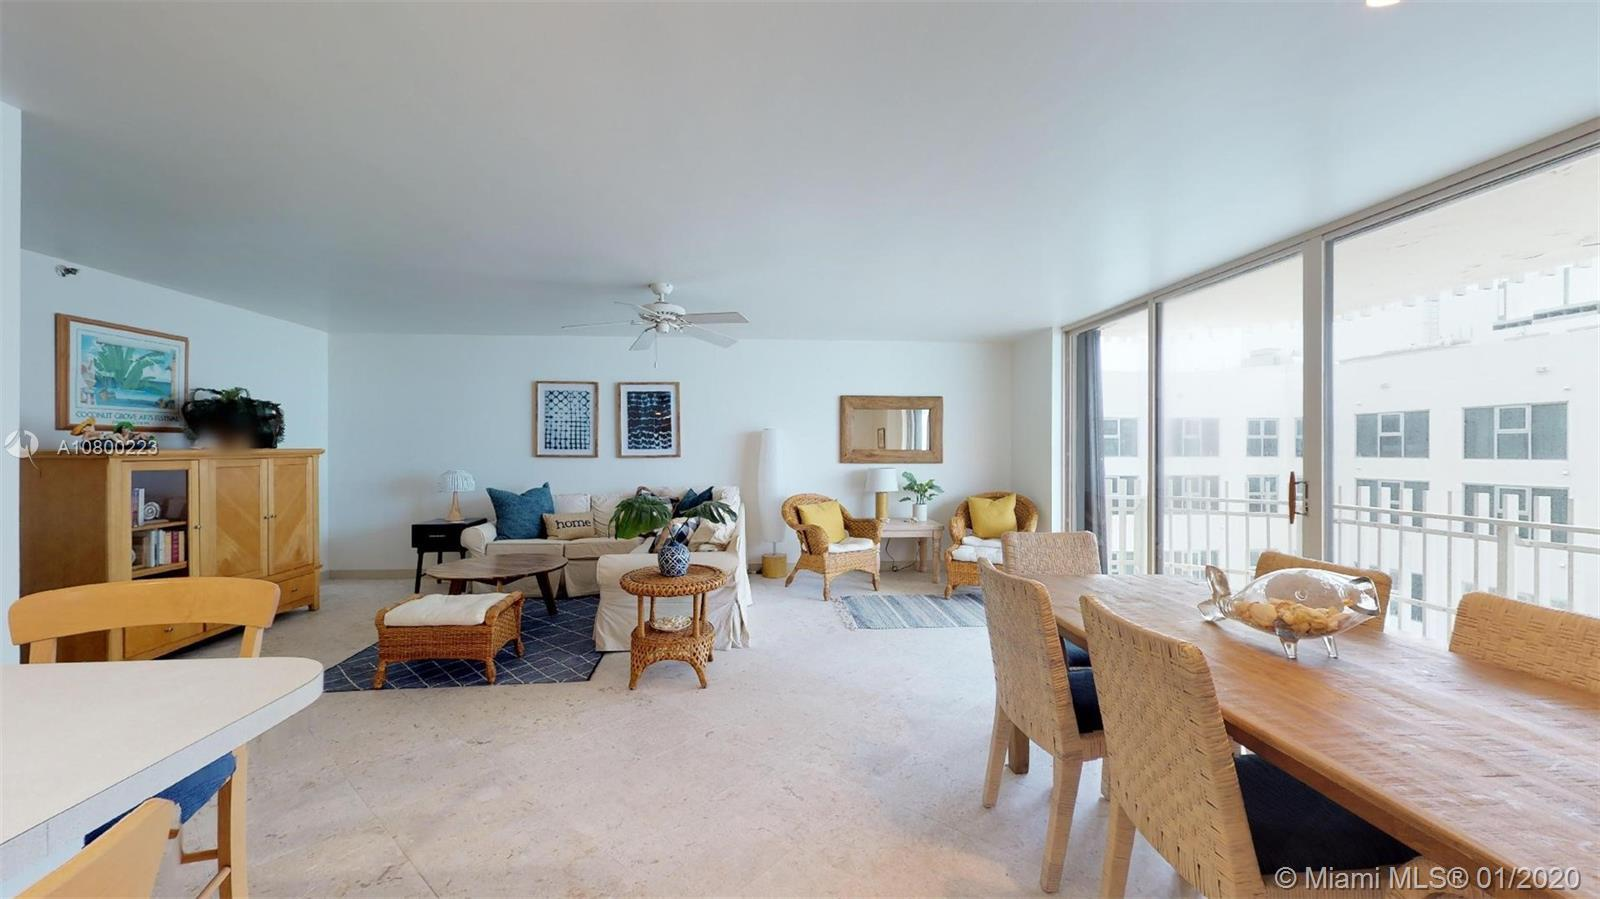 Spacious unit in beach front building with large balconies on each side to take in stunning views of